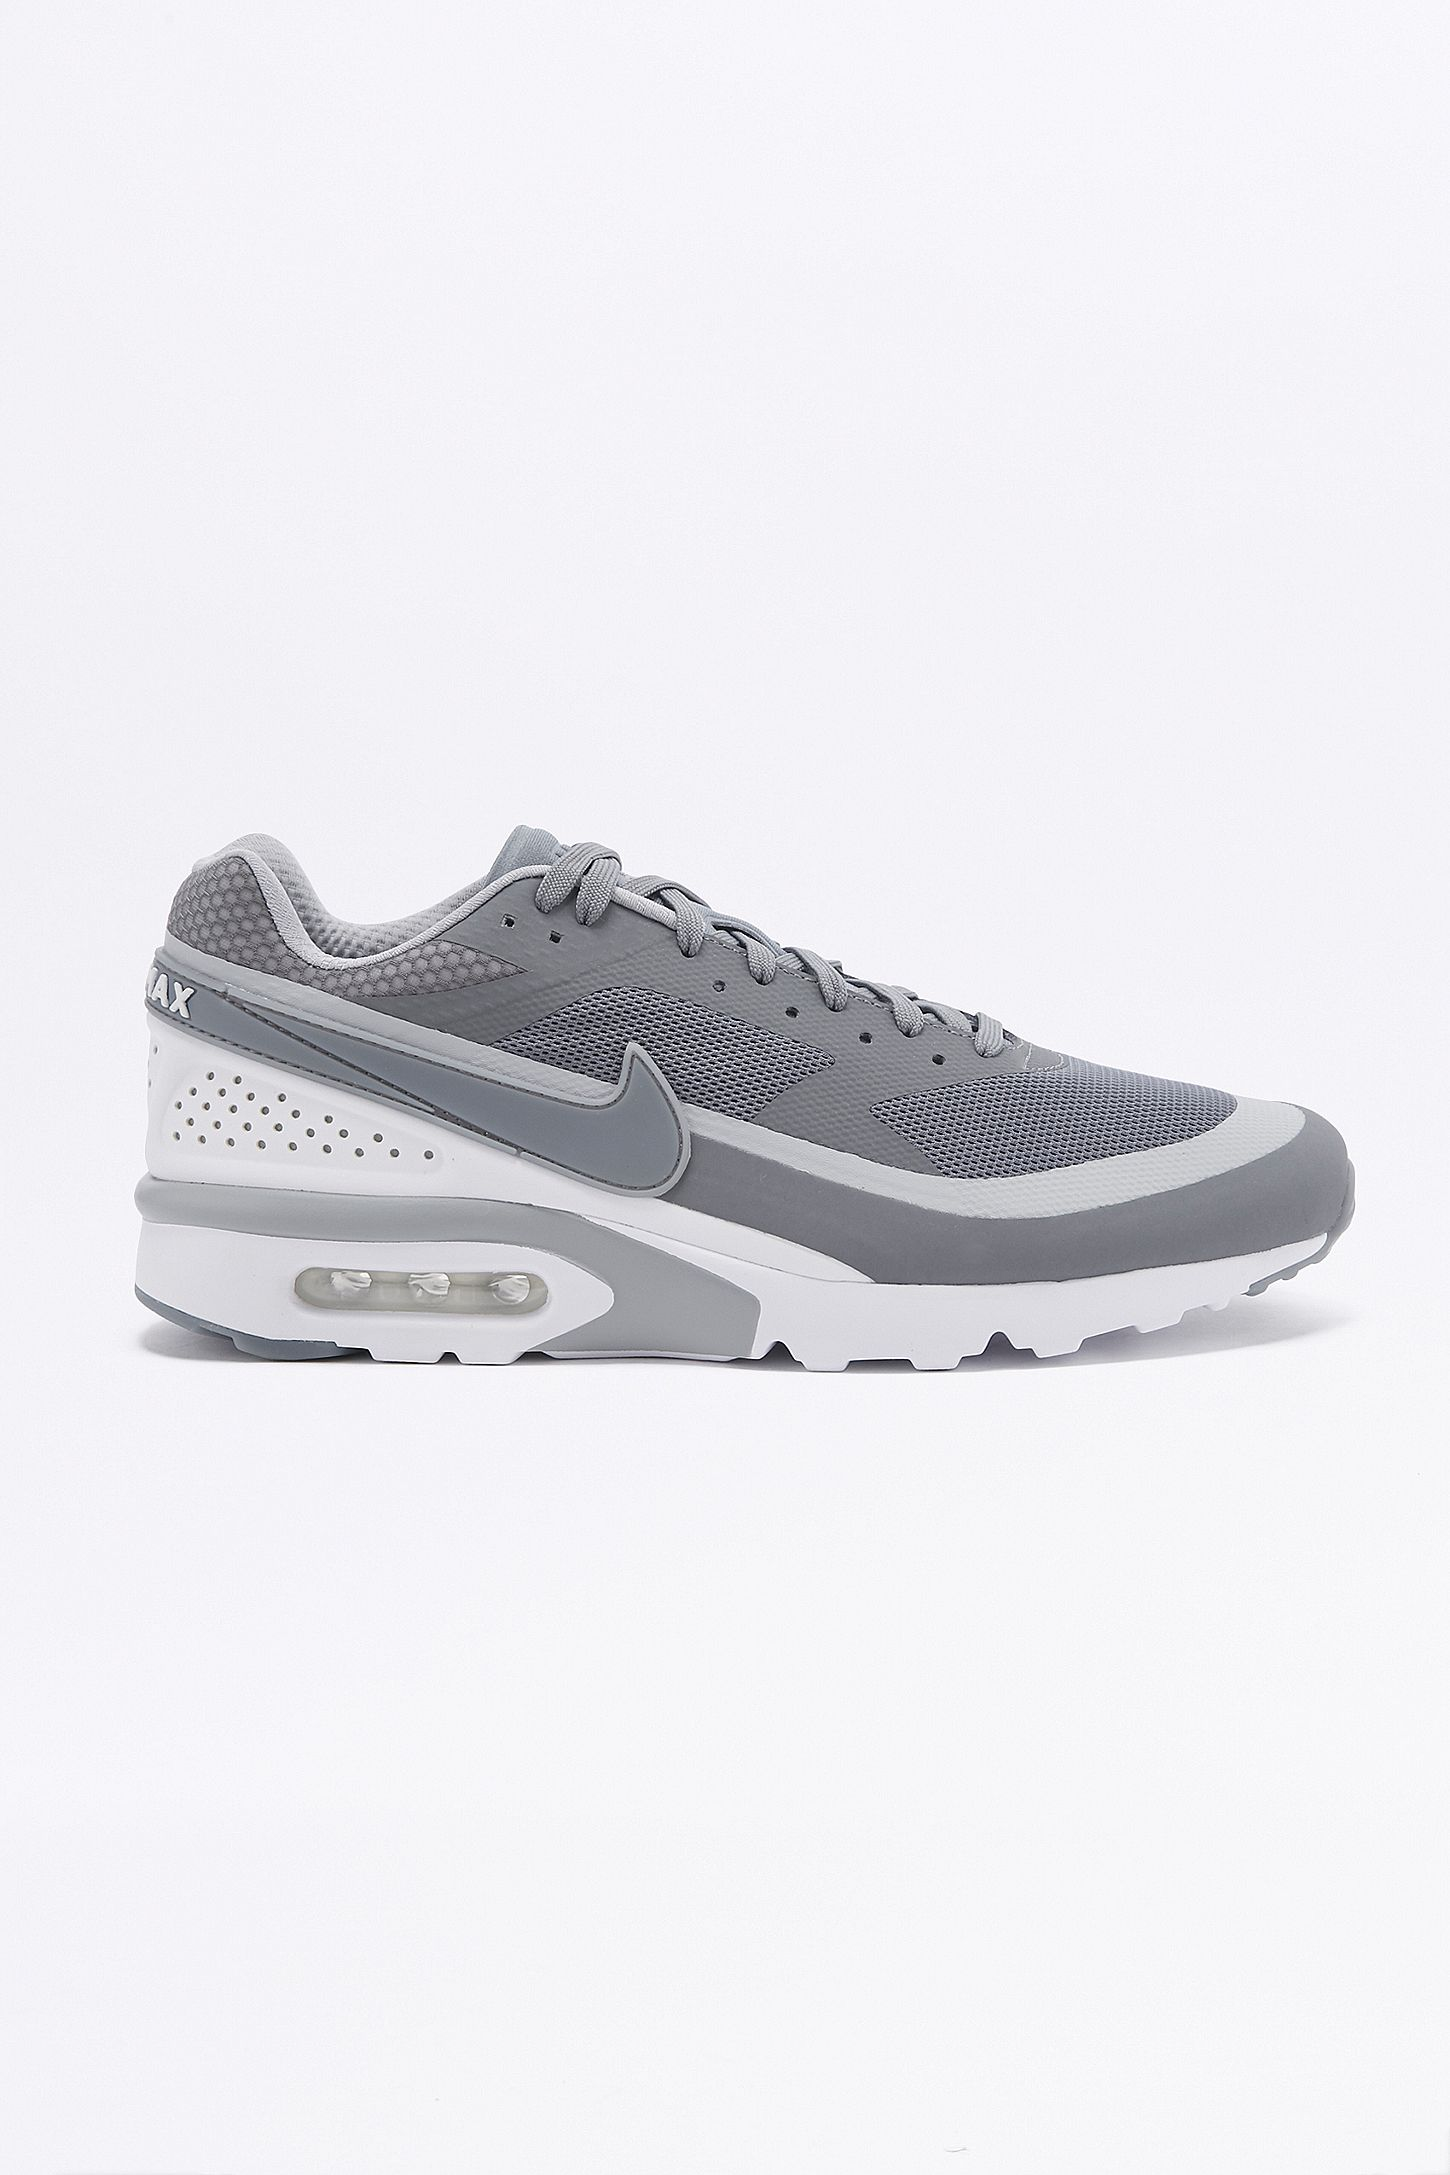 newest e1c6d 60051 Nike Air Max 90 BW Ultra Grey Trainers. Click on image to zoom. Hover to  zoom. Double Tap to Zoom